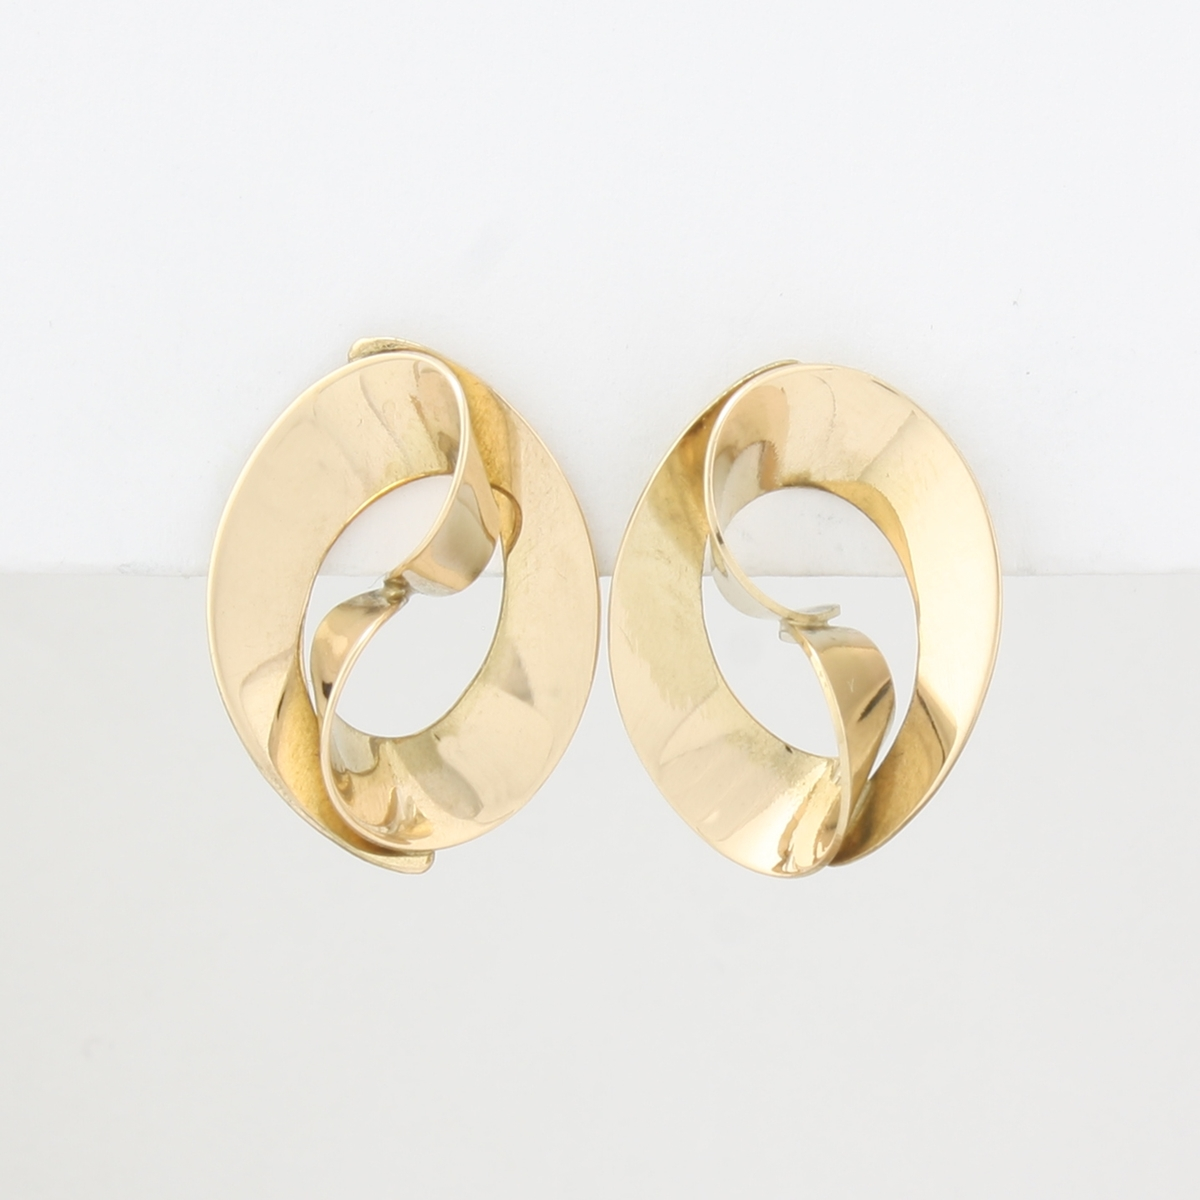 pre owned 14 karat yellow gold free form style post earring